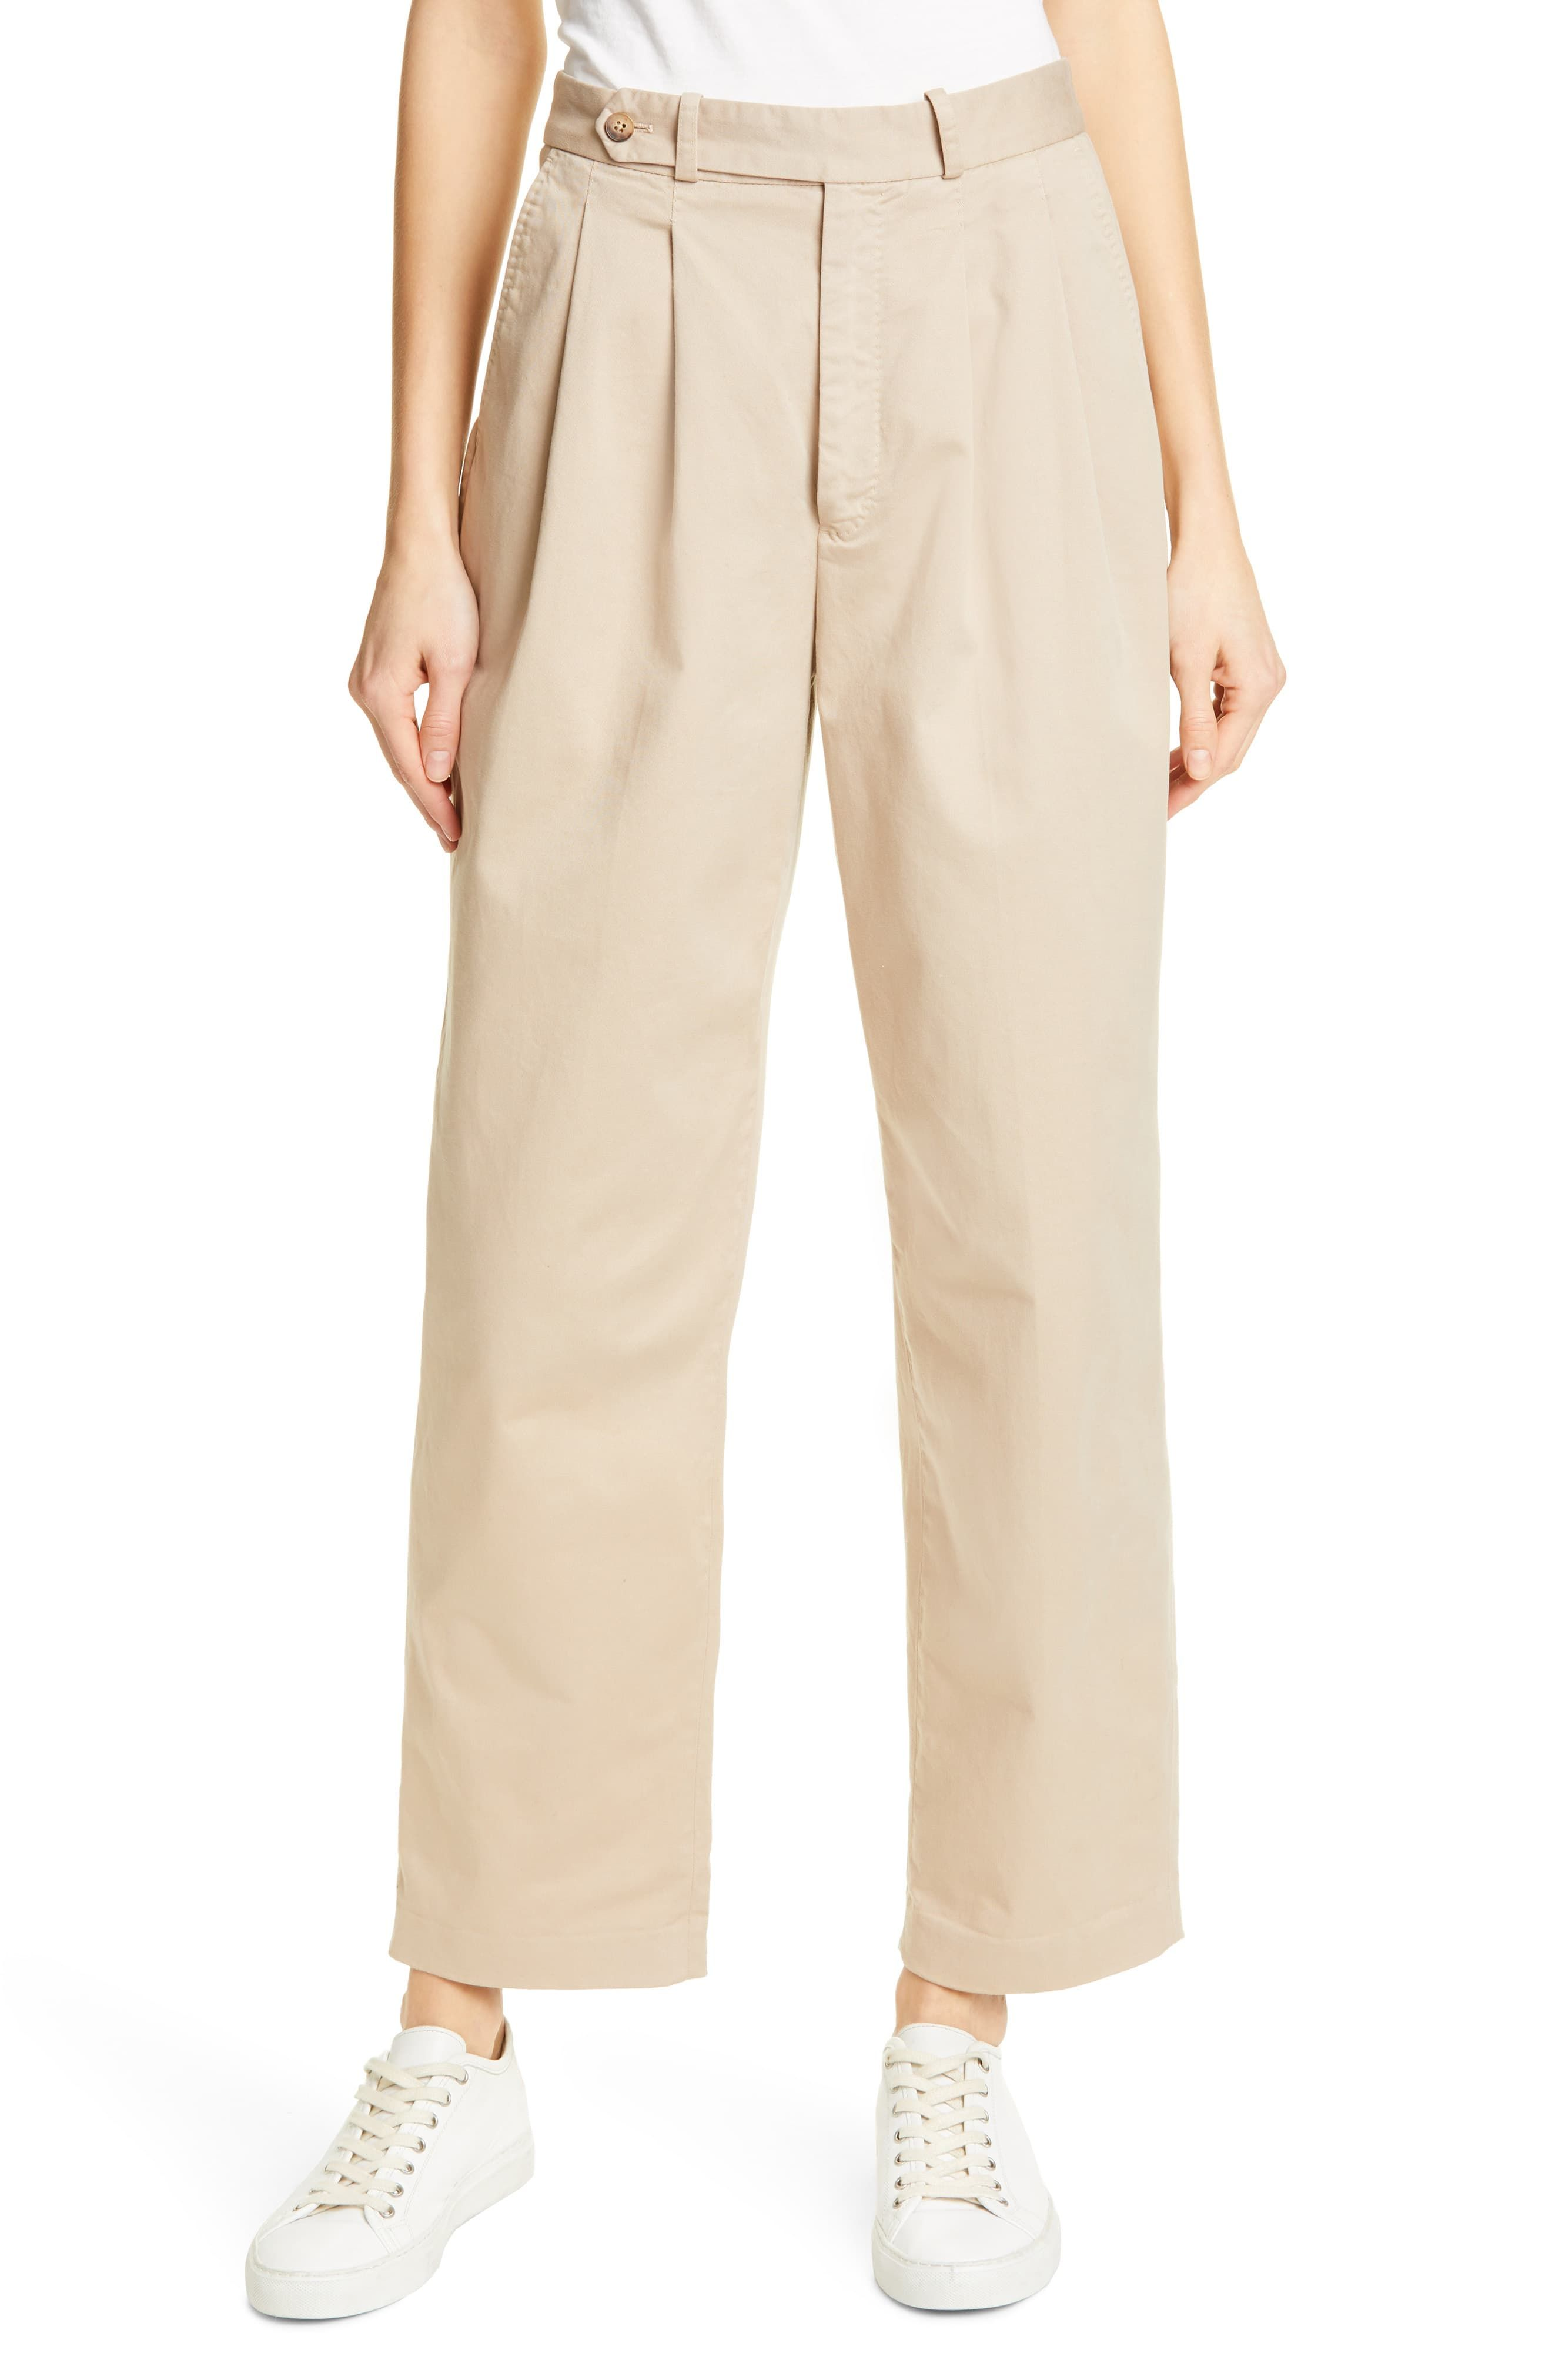 92c1299b5 Polo Ralph Lauren Straight Leg Pants in 2019 | Products | Straight ...